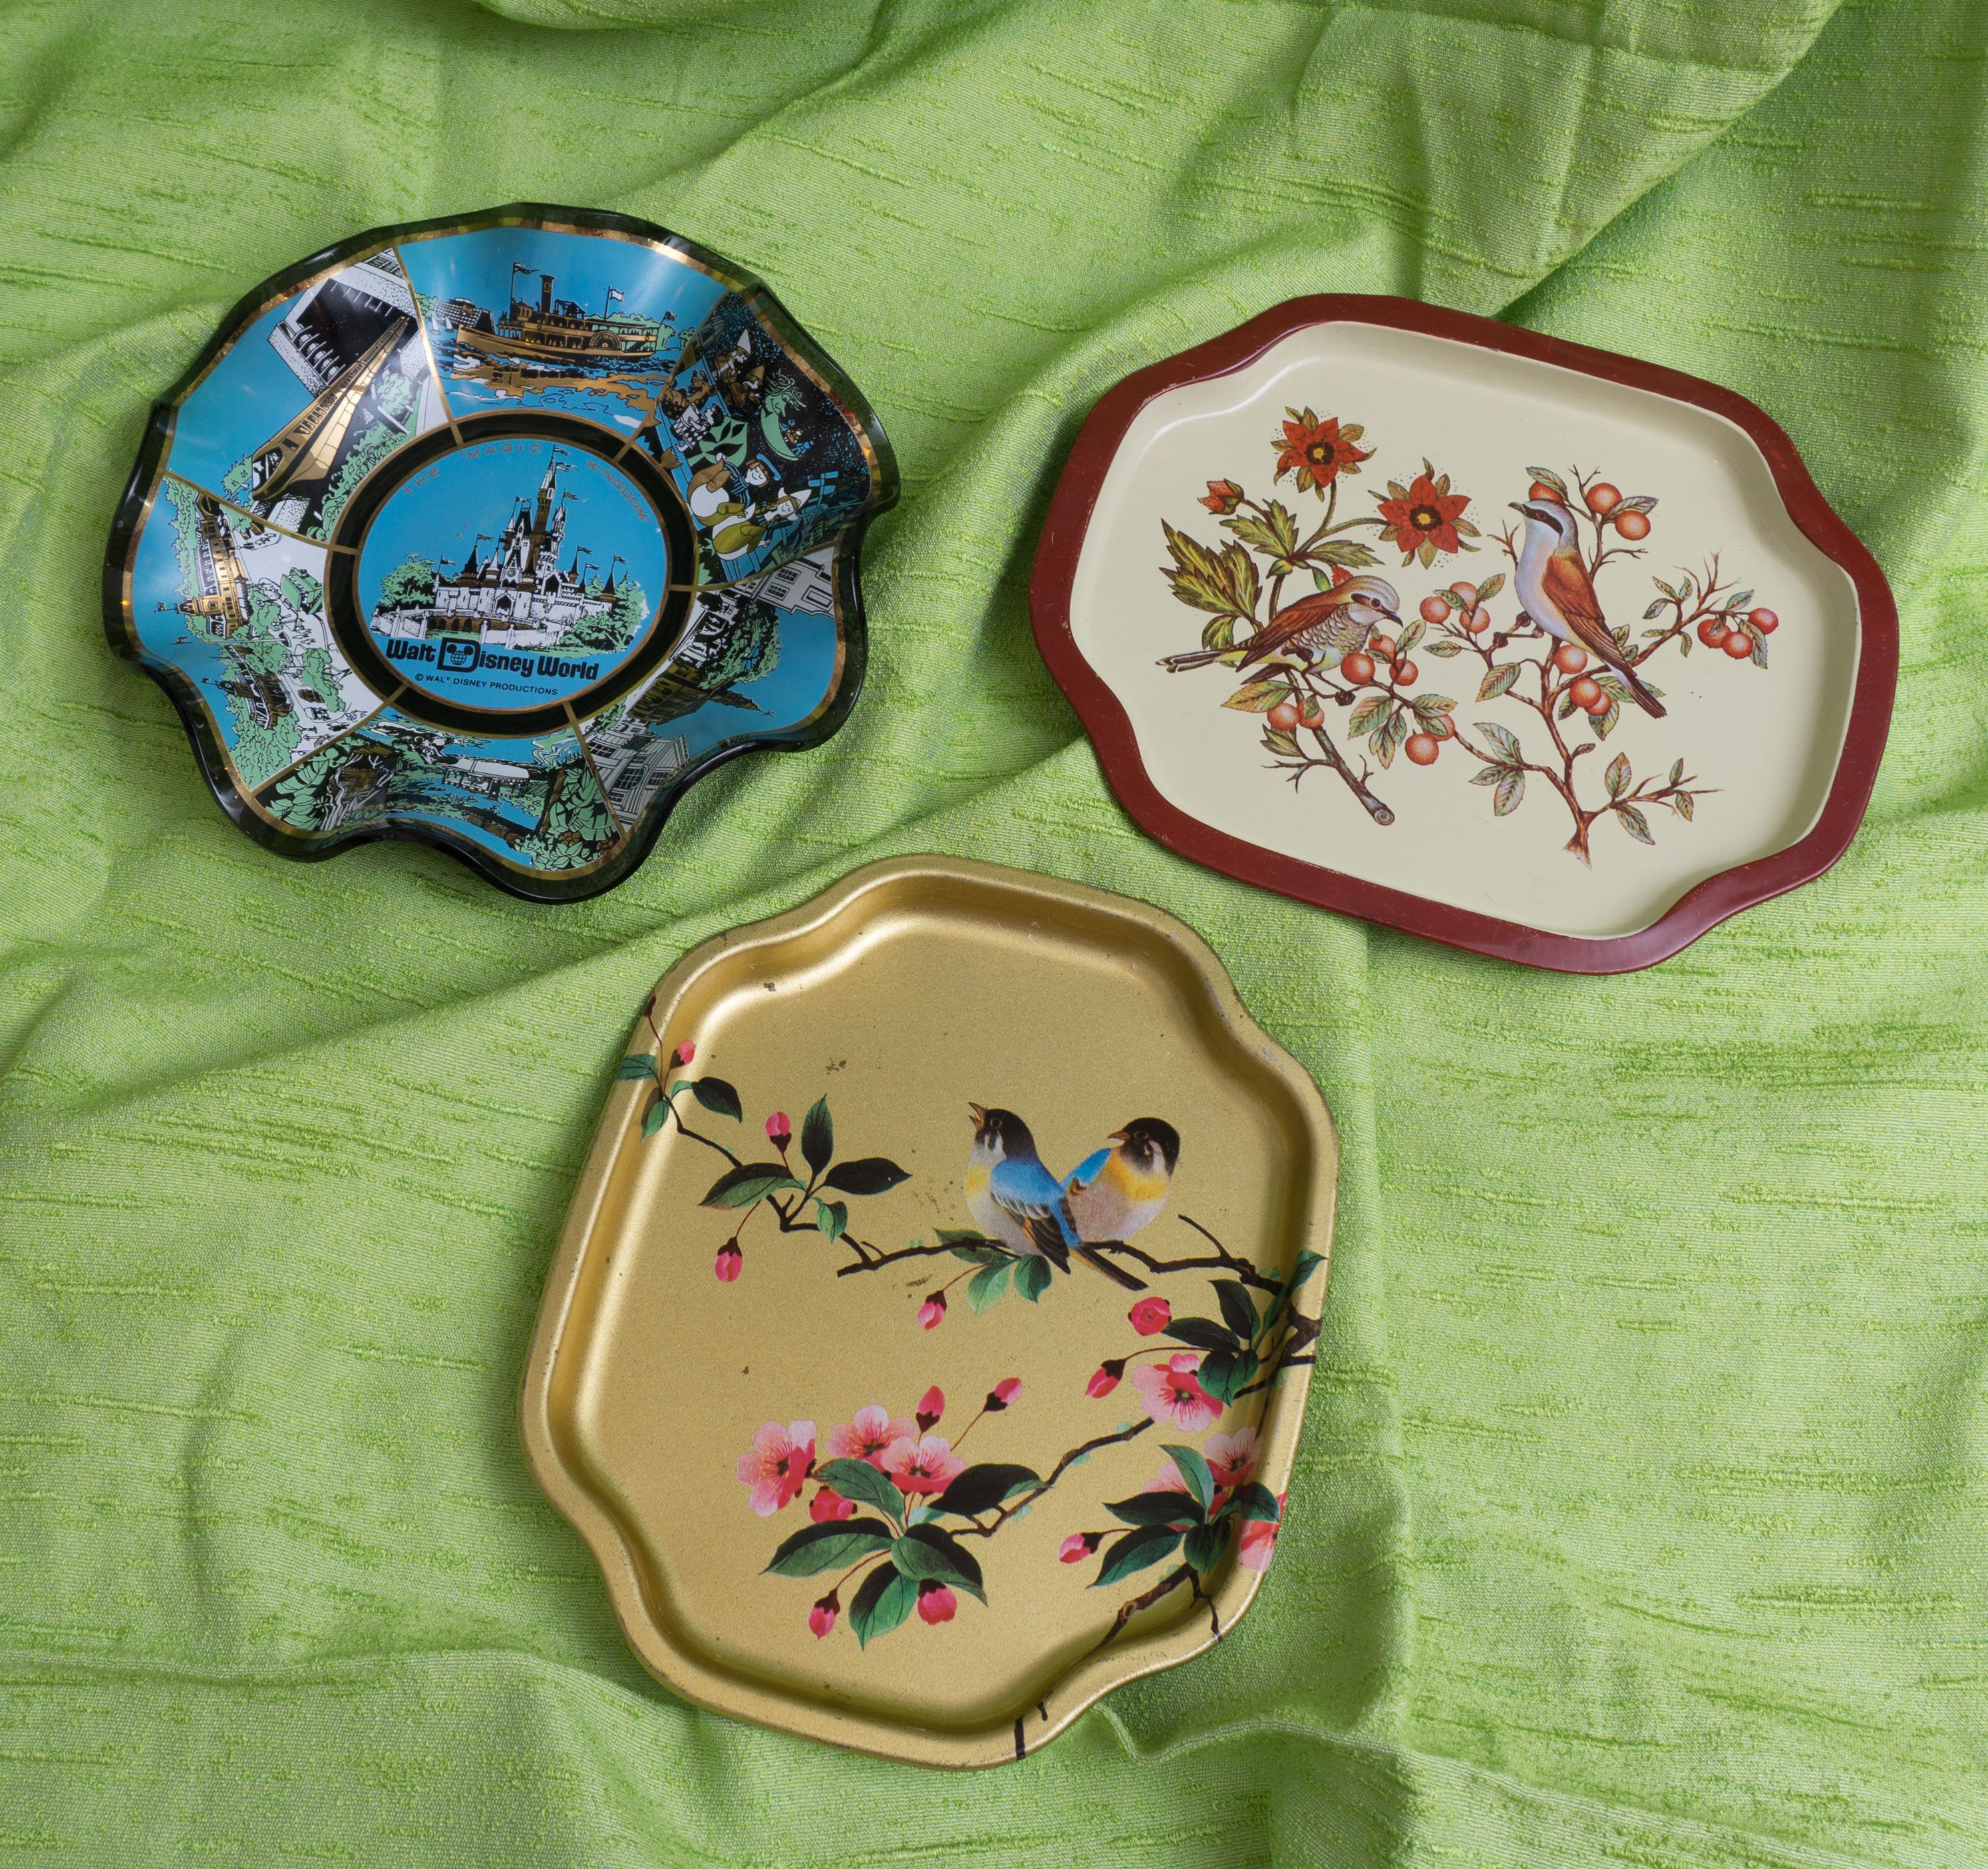 Lot of Three Collectibles - Two Elite English Tip Trays and 1970's Disney World Souvenir Candy Dish